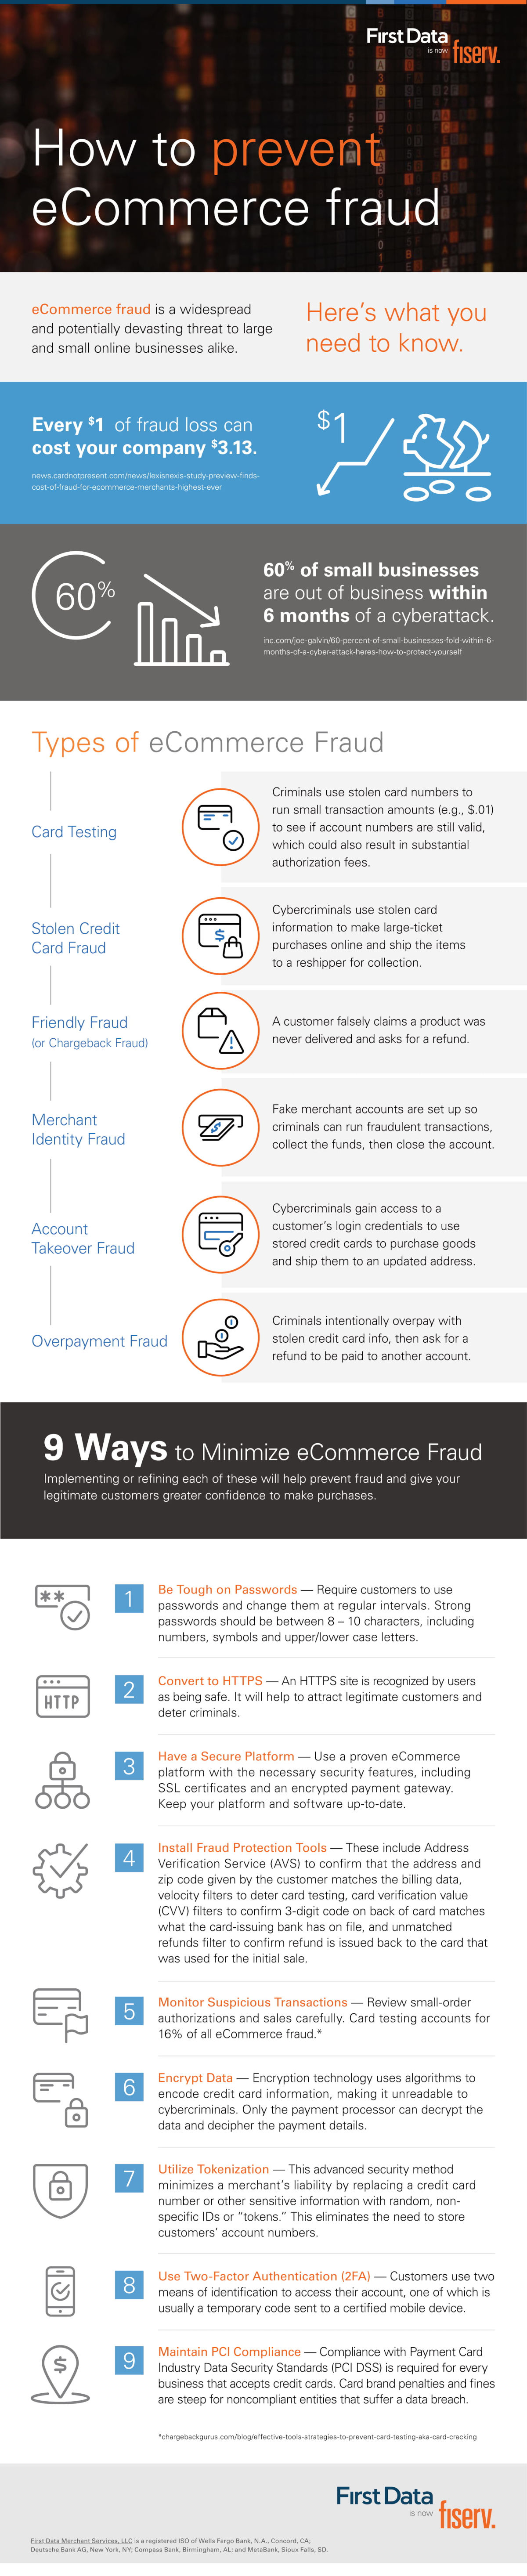 How To Prevent eCommerce Fraud - Infographic